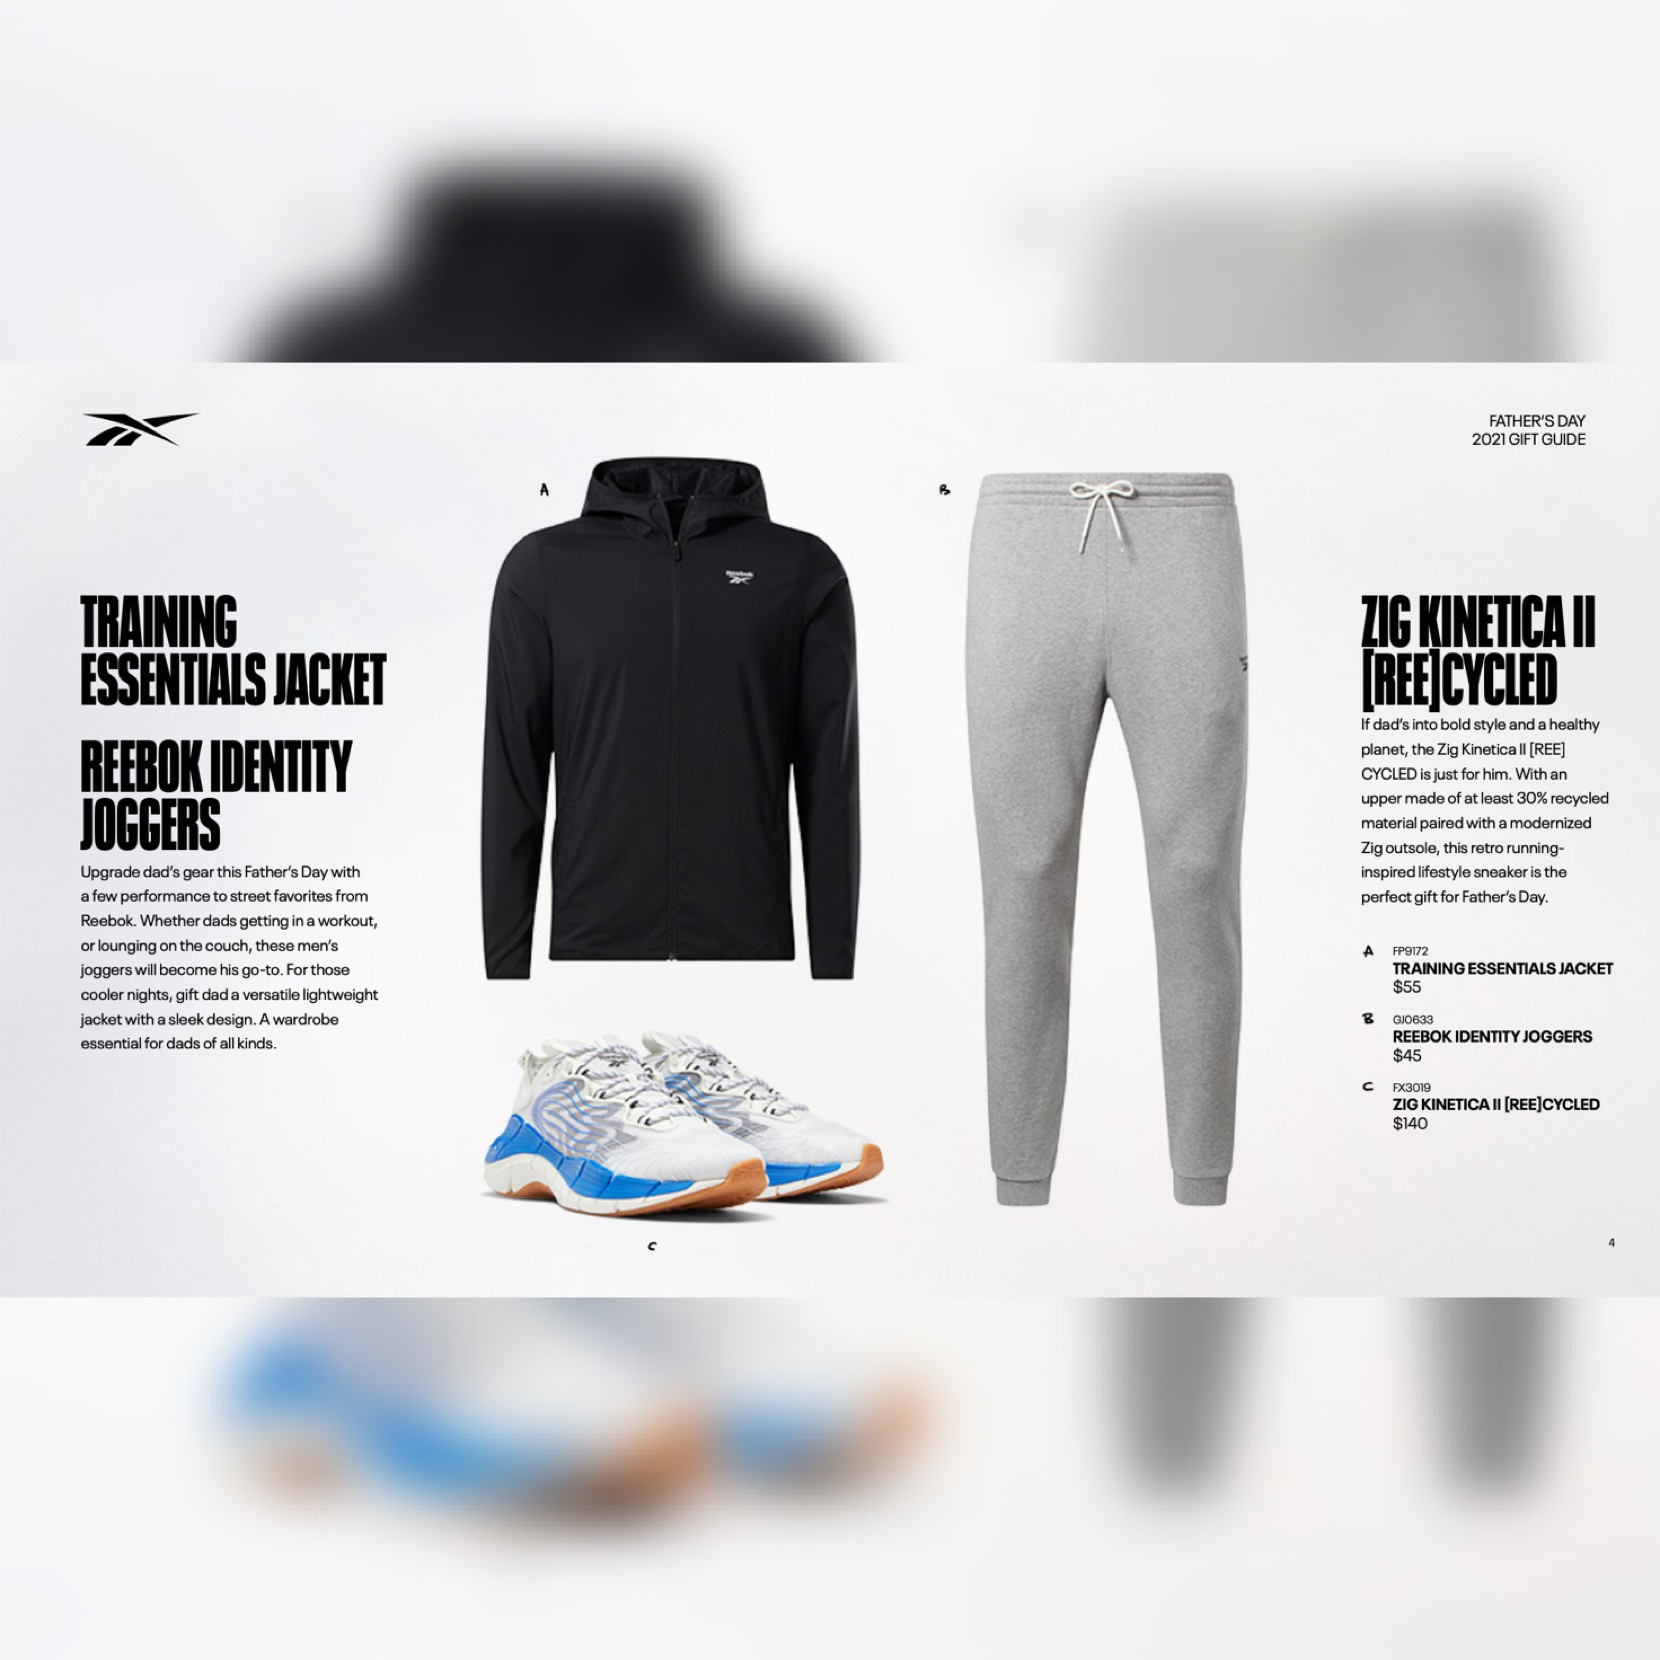 Reebok father's day gift guide image via Jason SIlva for use by 360 Magazine